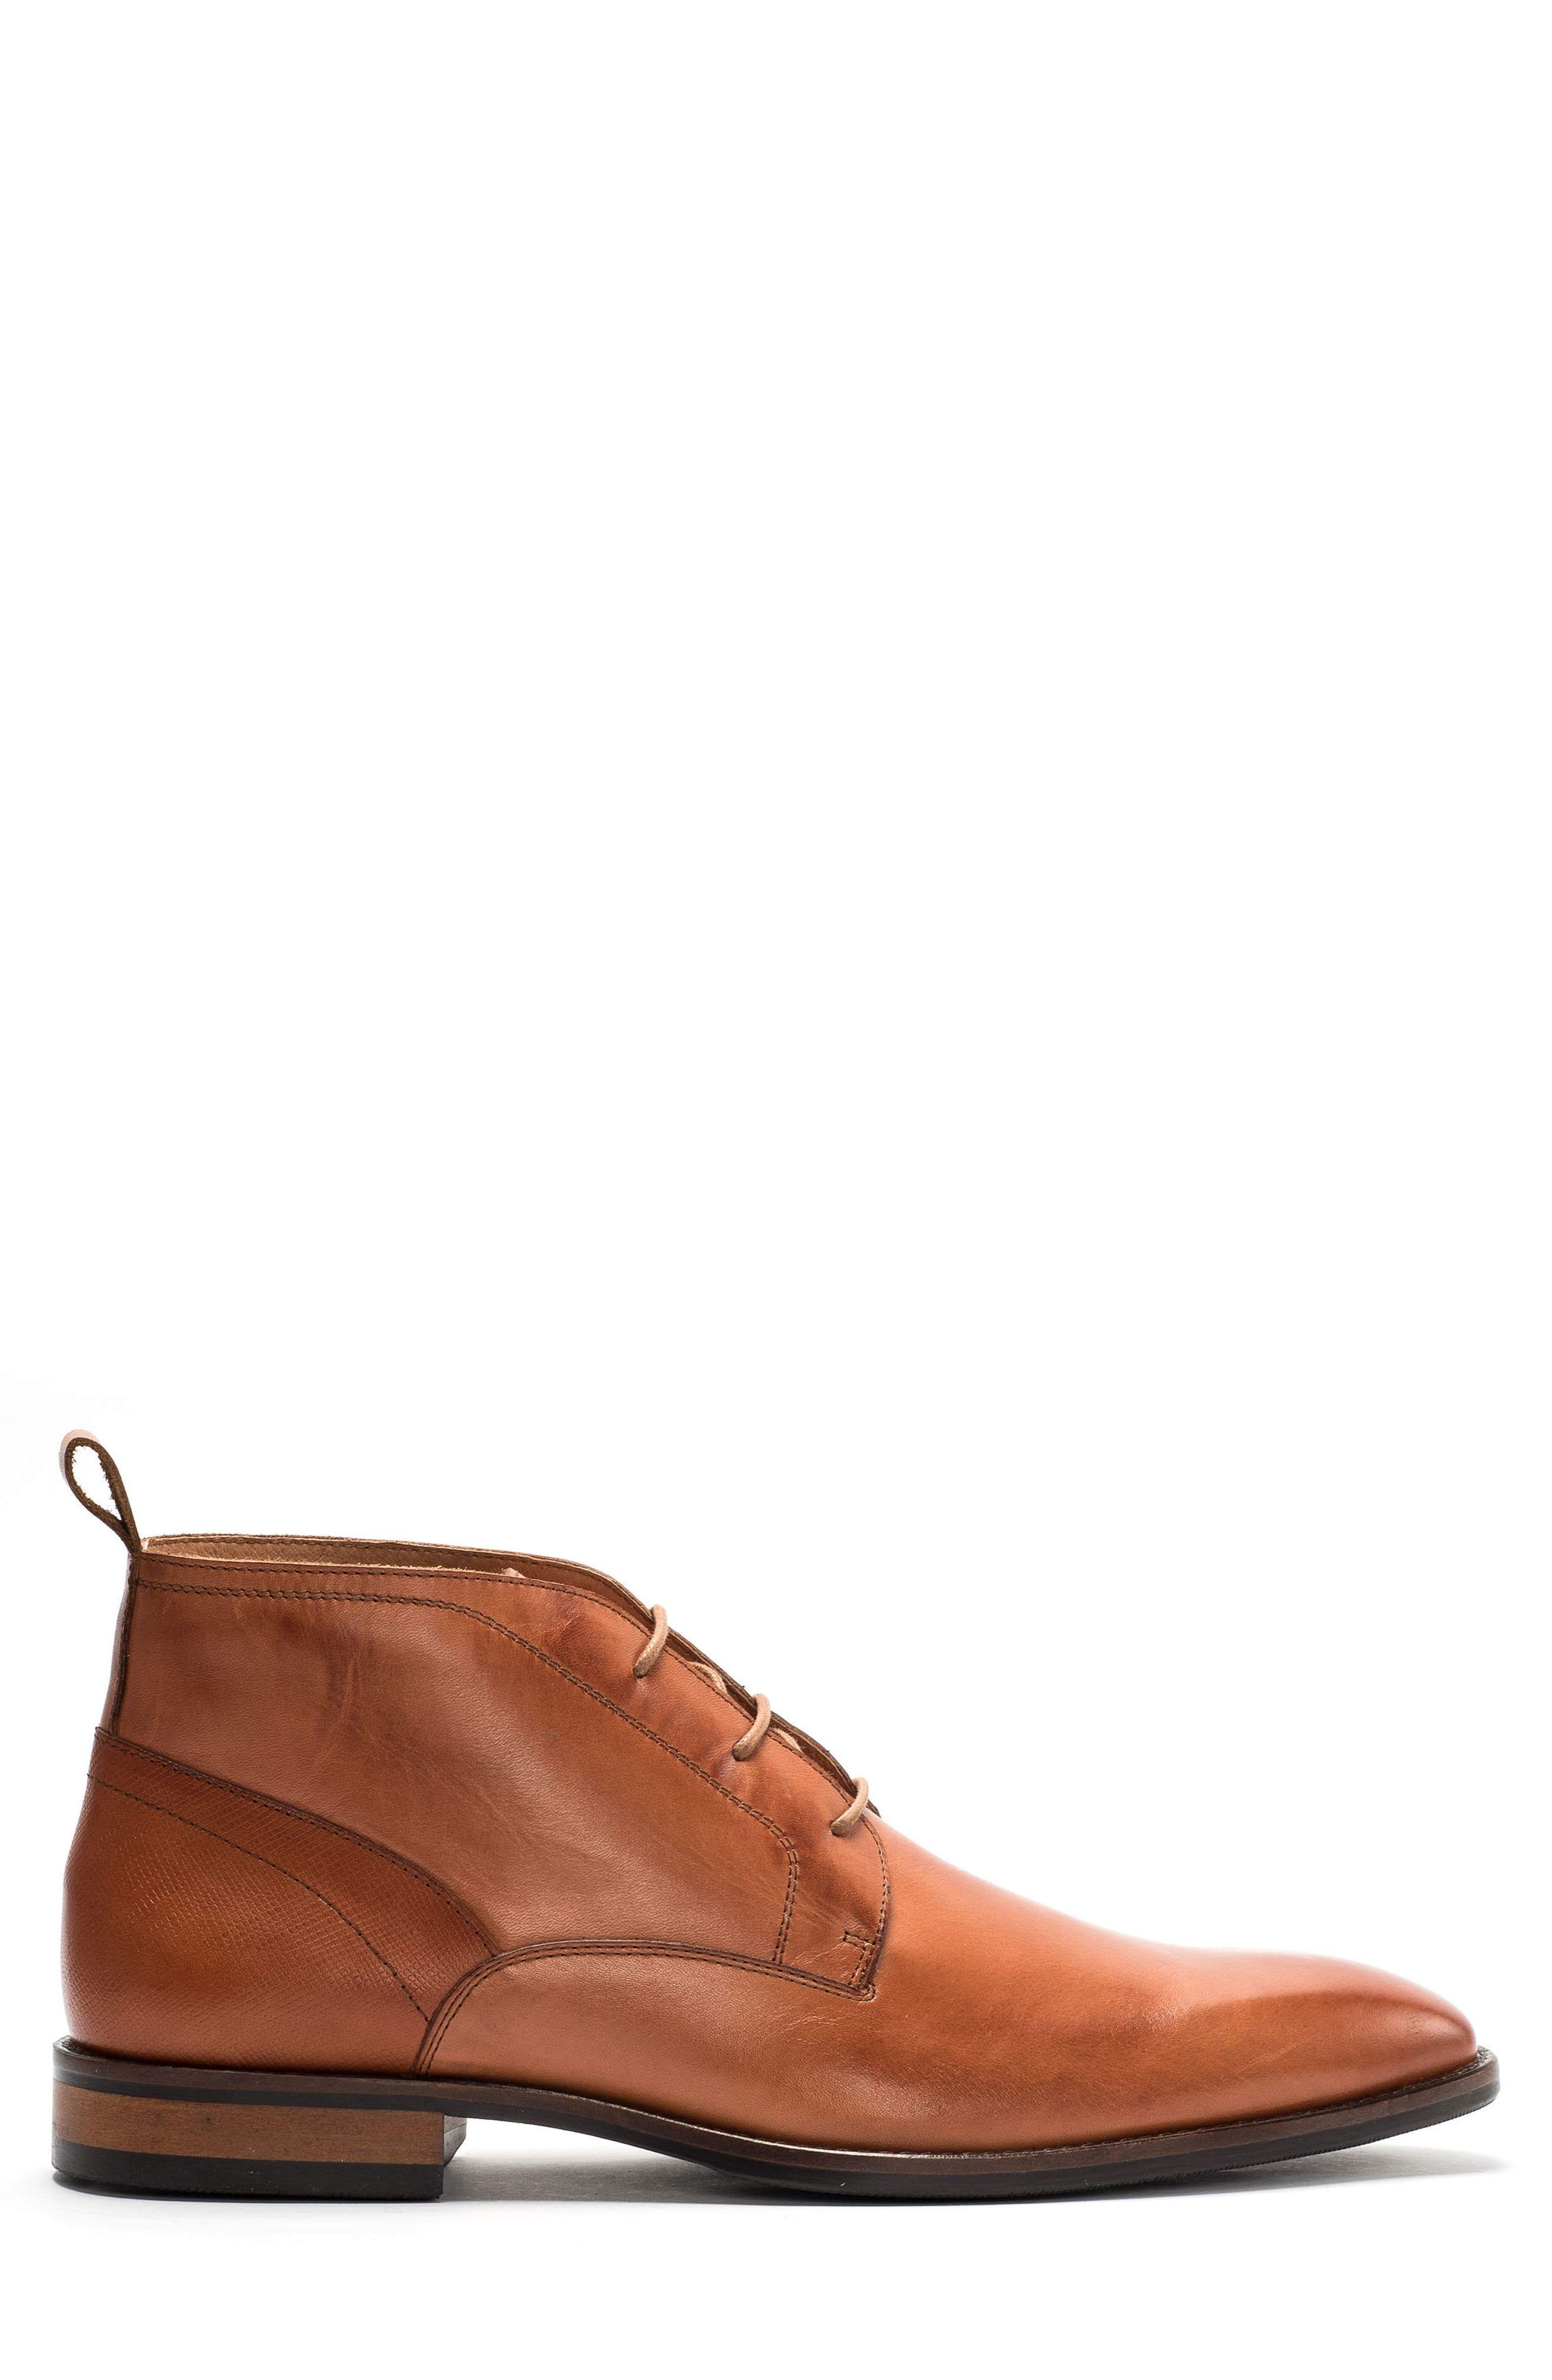 Wellington St. Chukka Boot,                             Alternate thumbnail 3, color,                             TAN